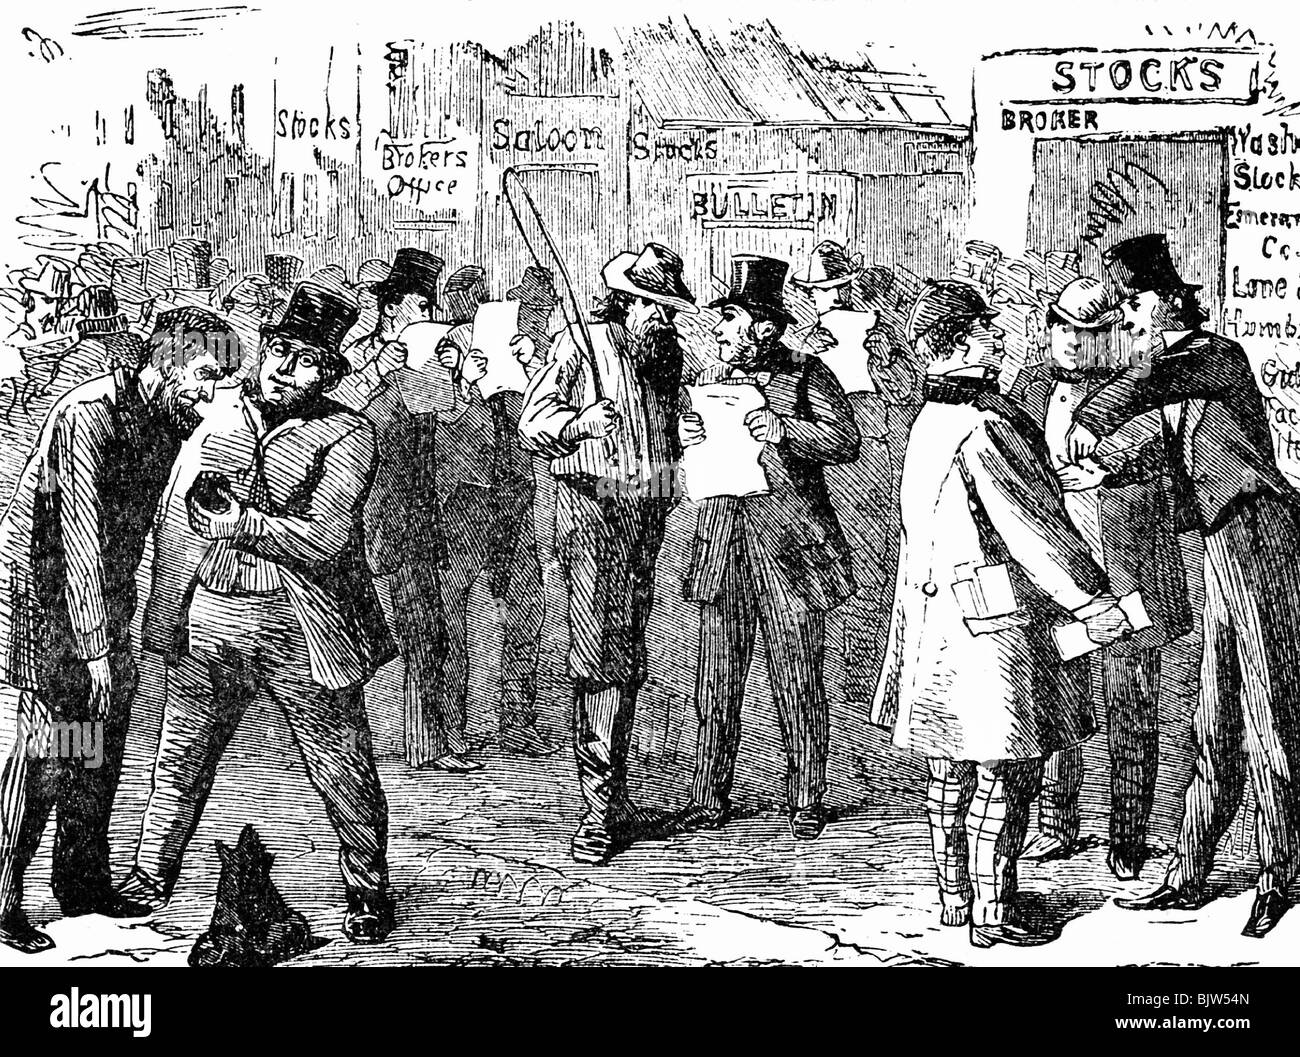 metals, gold, dealers, wood engraving, middle of 19th century, historic, historical, gold fever, gold rush, gold - Stock Image